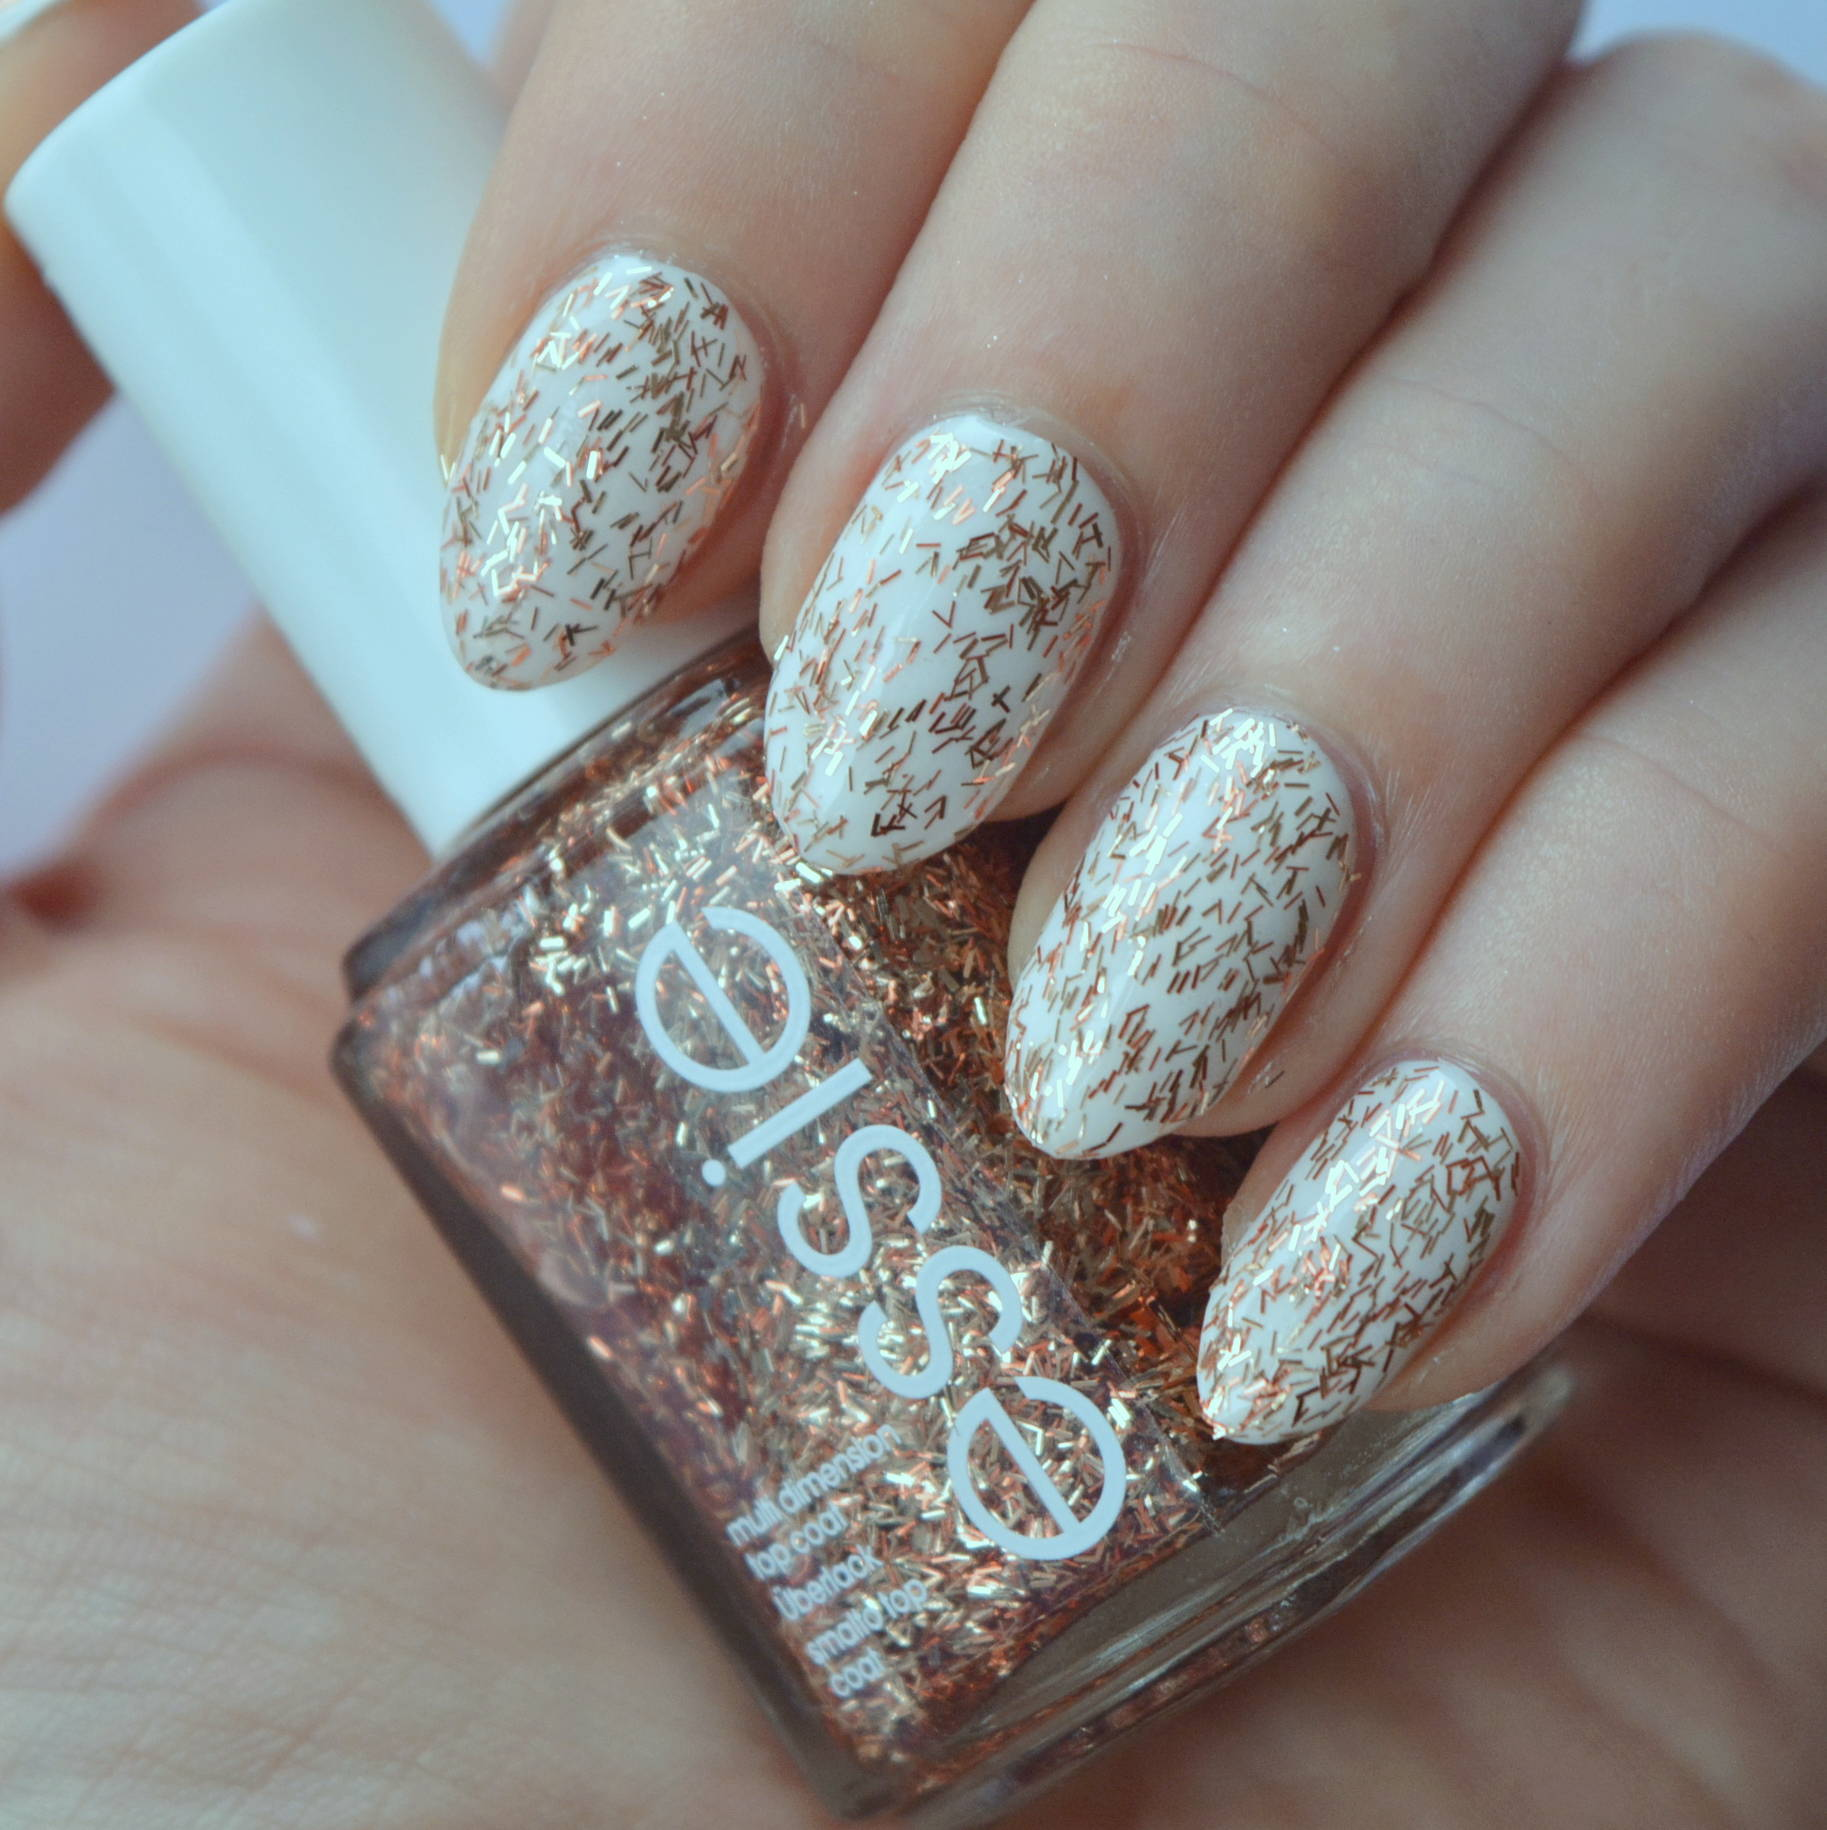 essie Luxeffects 2015 Collection Review - Tassel Shaker - Talonted Lex